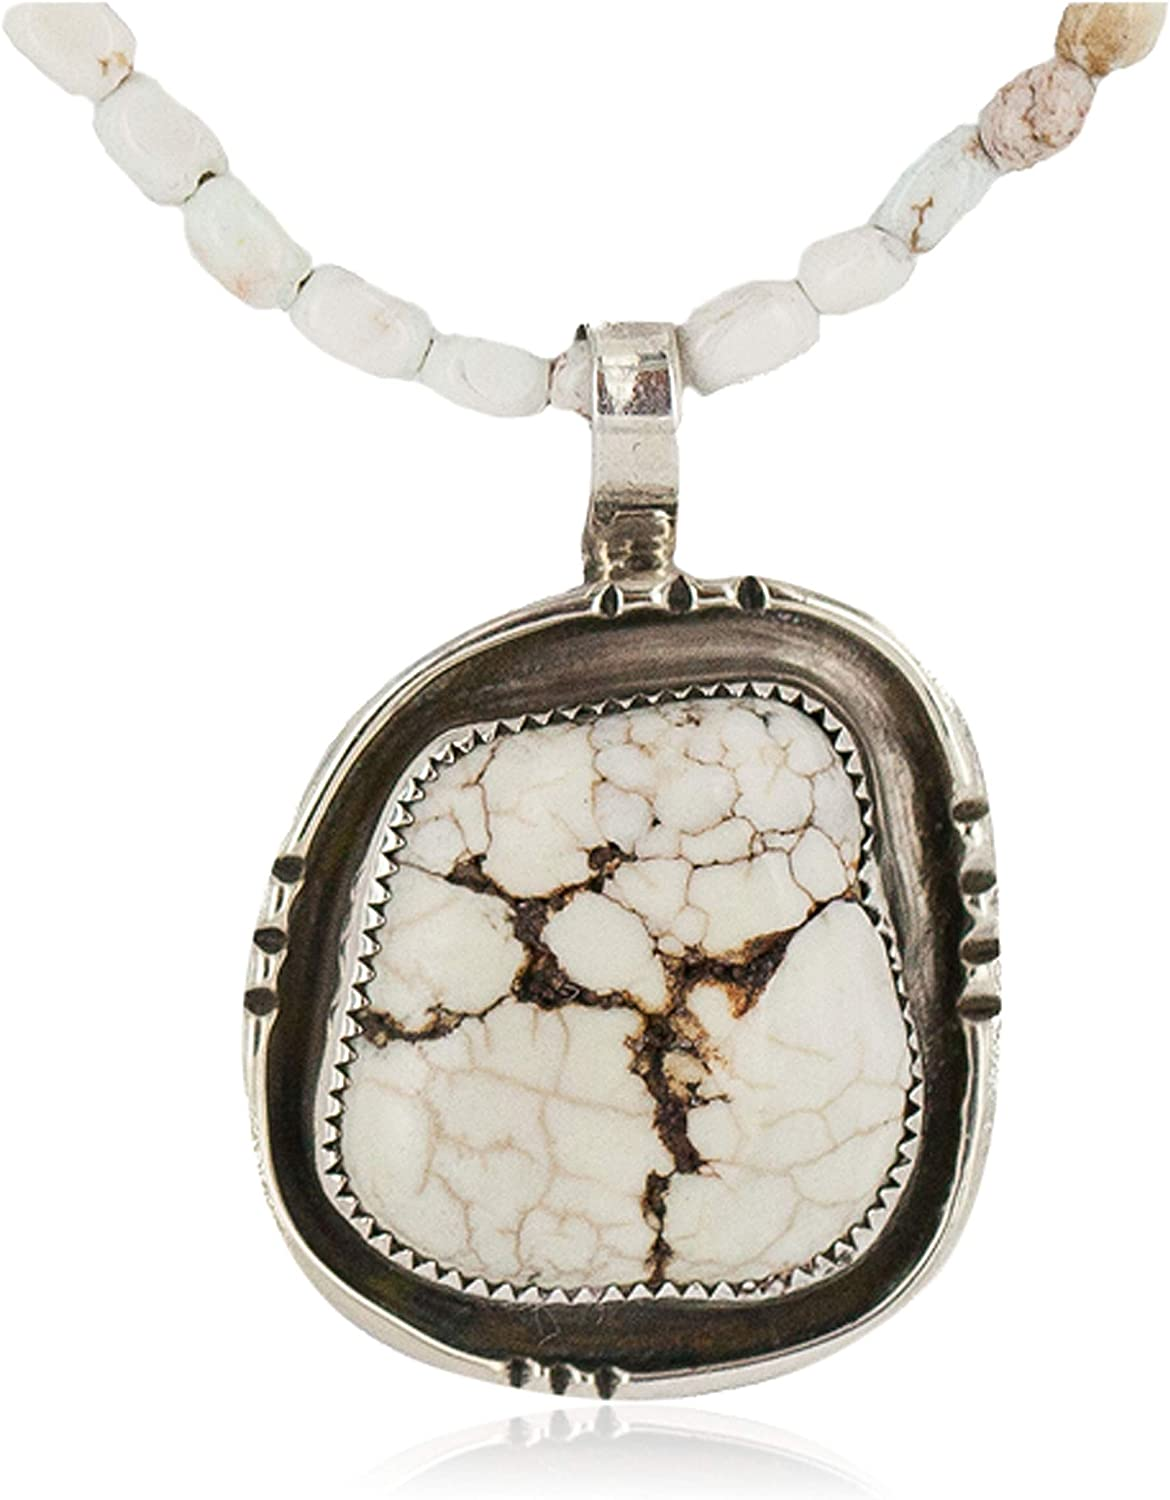 $470Tag Silver Certified Navajo Natural White Buffalo Native Necklace 18280-3-15975-8 Made by Loma Siiva